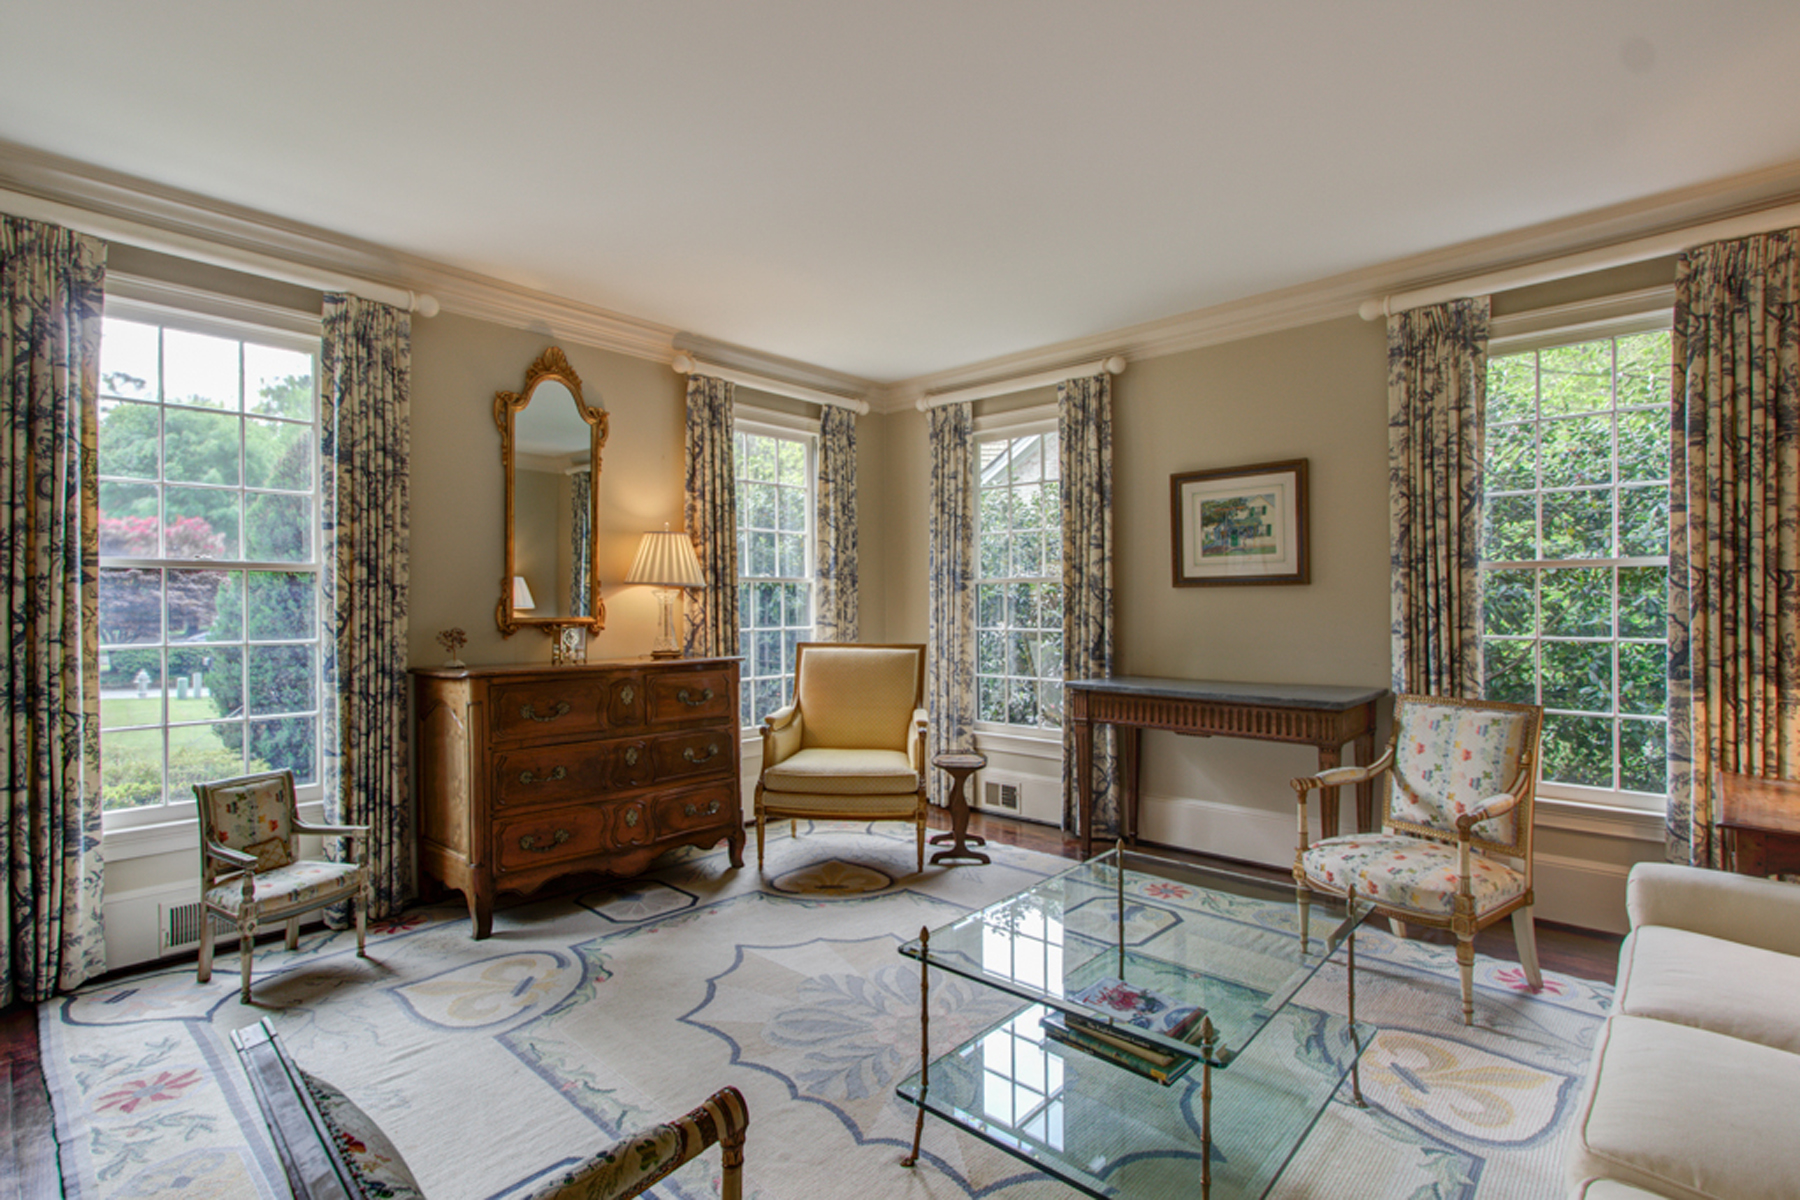 Additional photo for property listing at French Inspired Home In Historic Brookhaven 916 Club Station Drive NE Atlanta, Georgia 30319 Stati Uniti